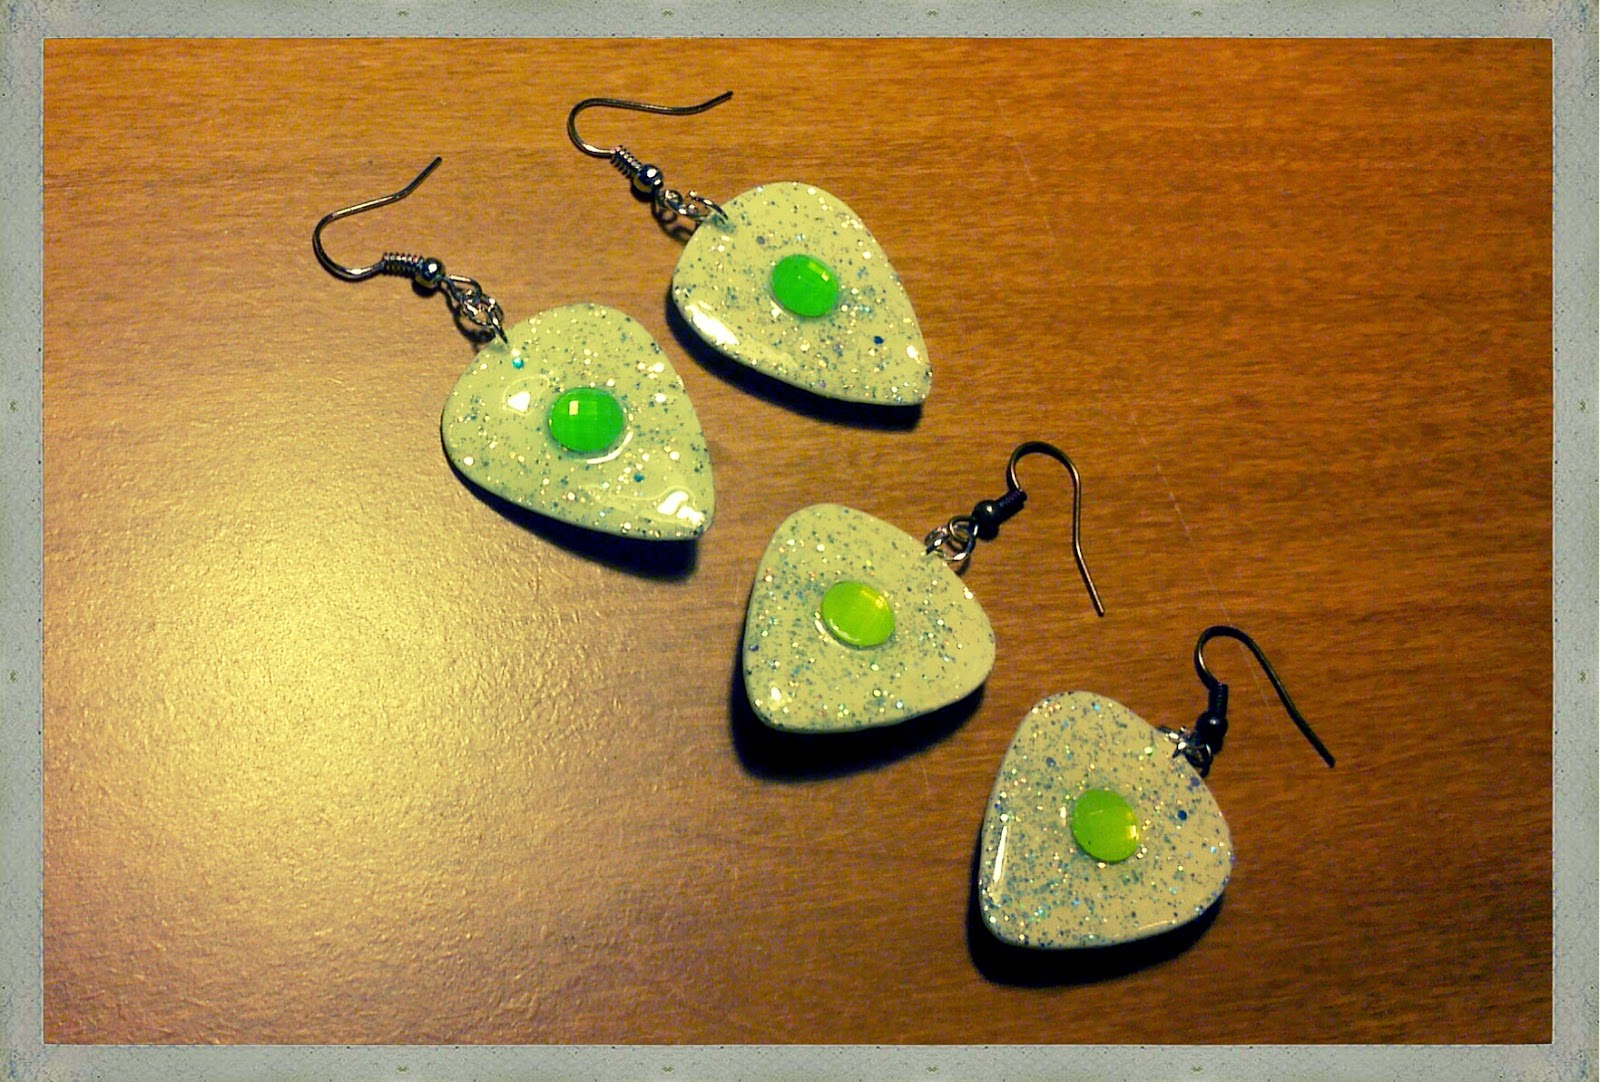 NEW vibrant glow in the dark guitar pick earrings